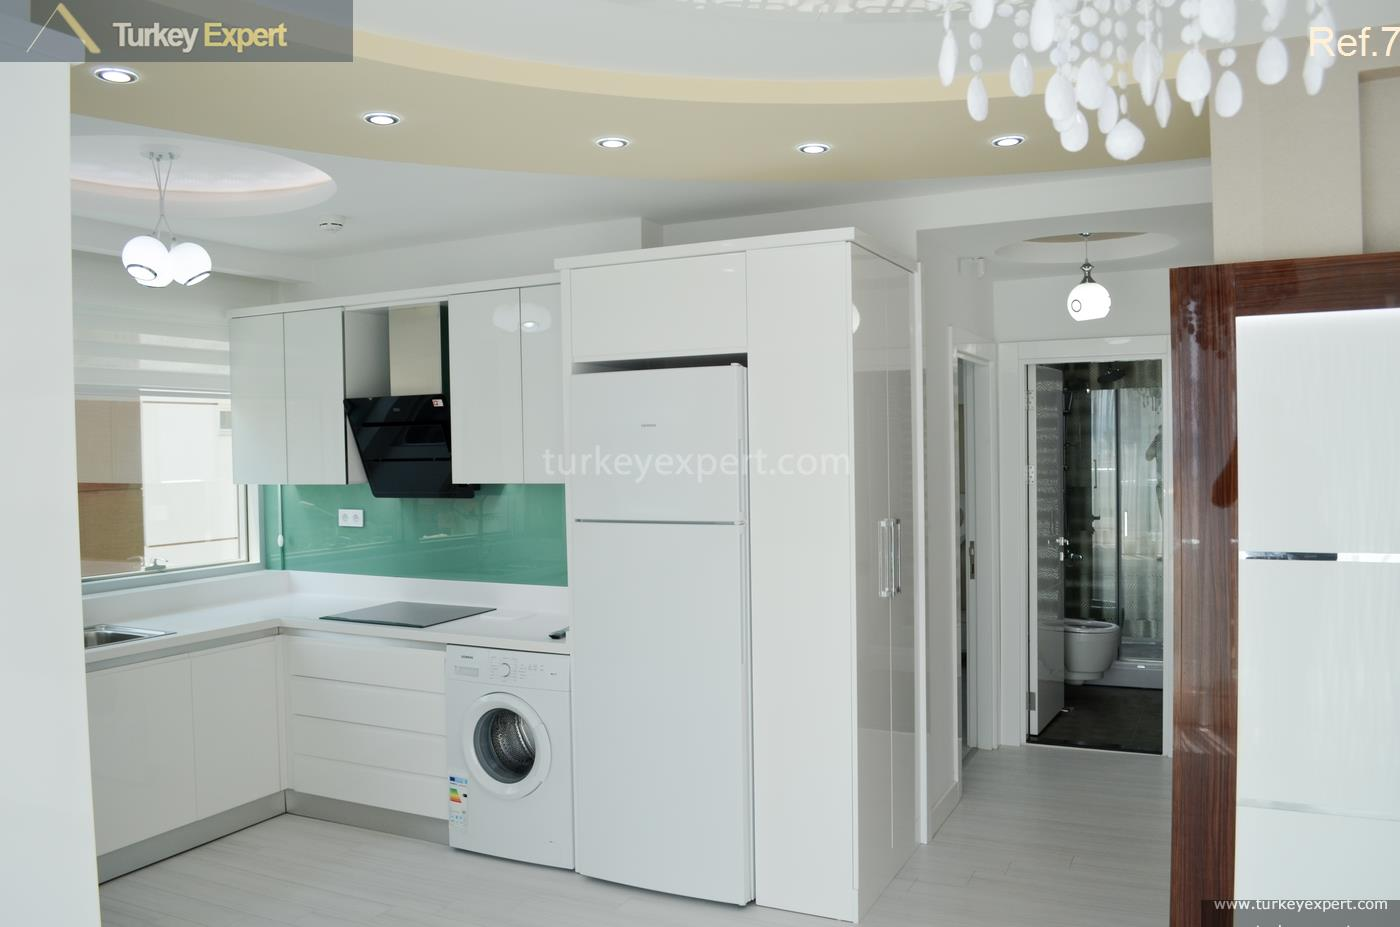 apartments for sale in antalya44.